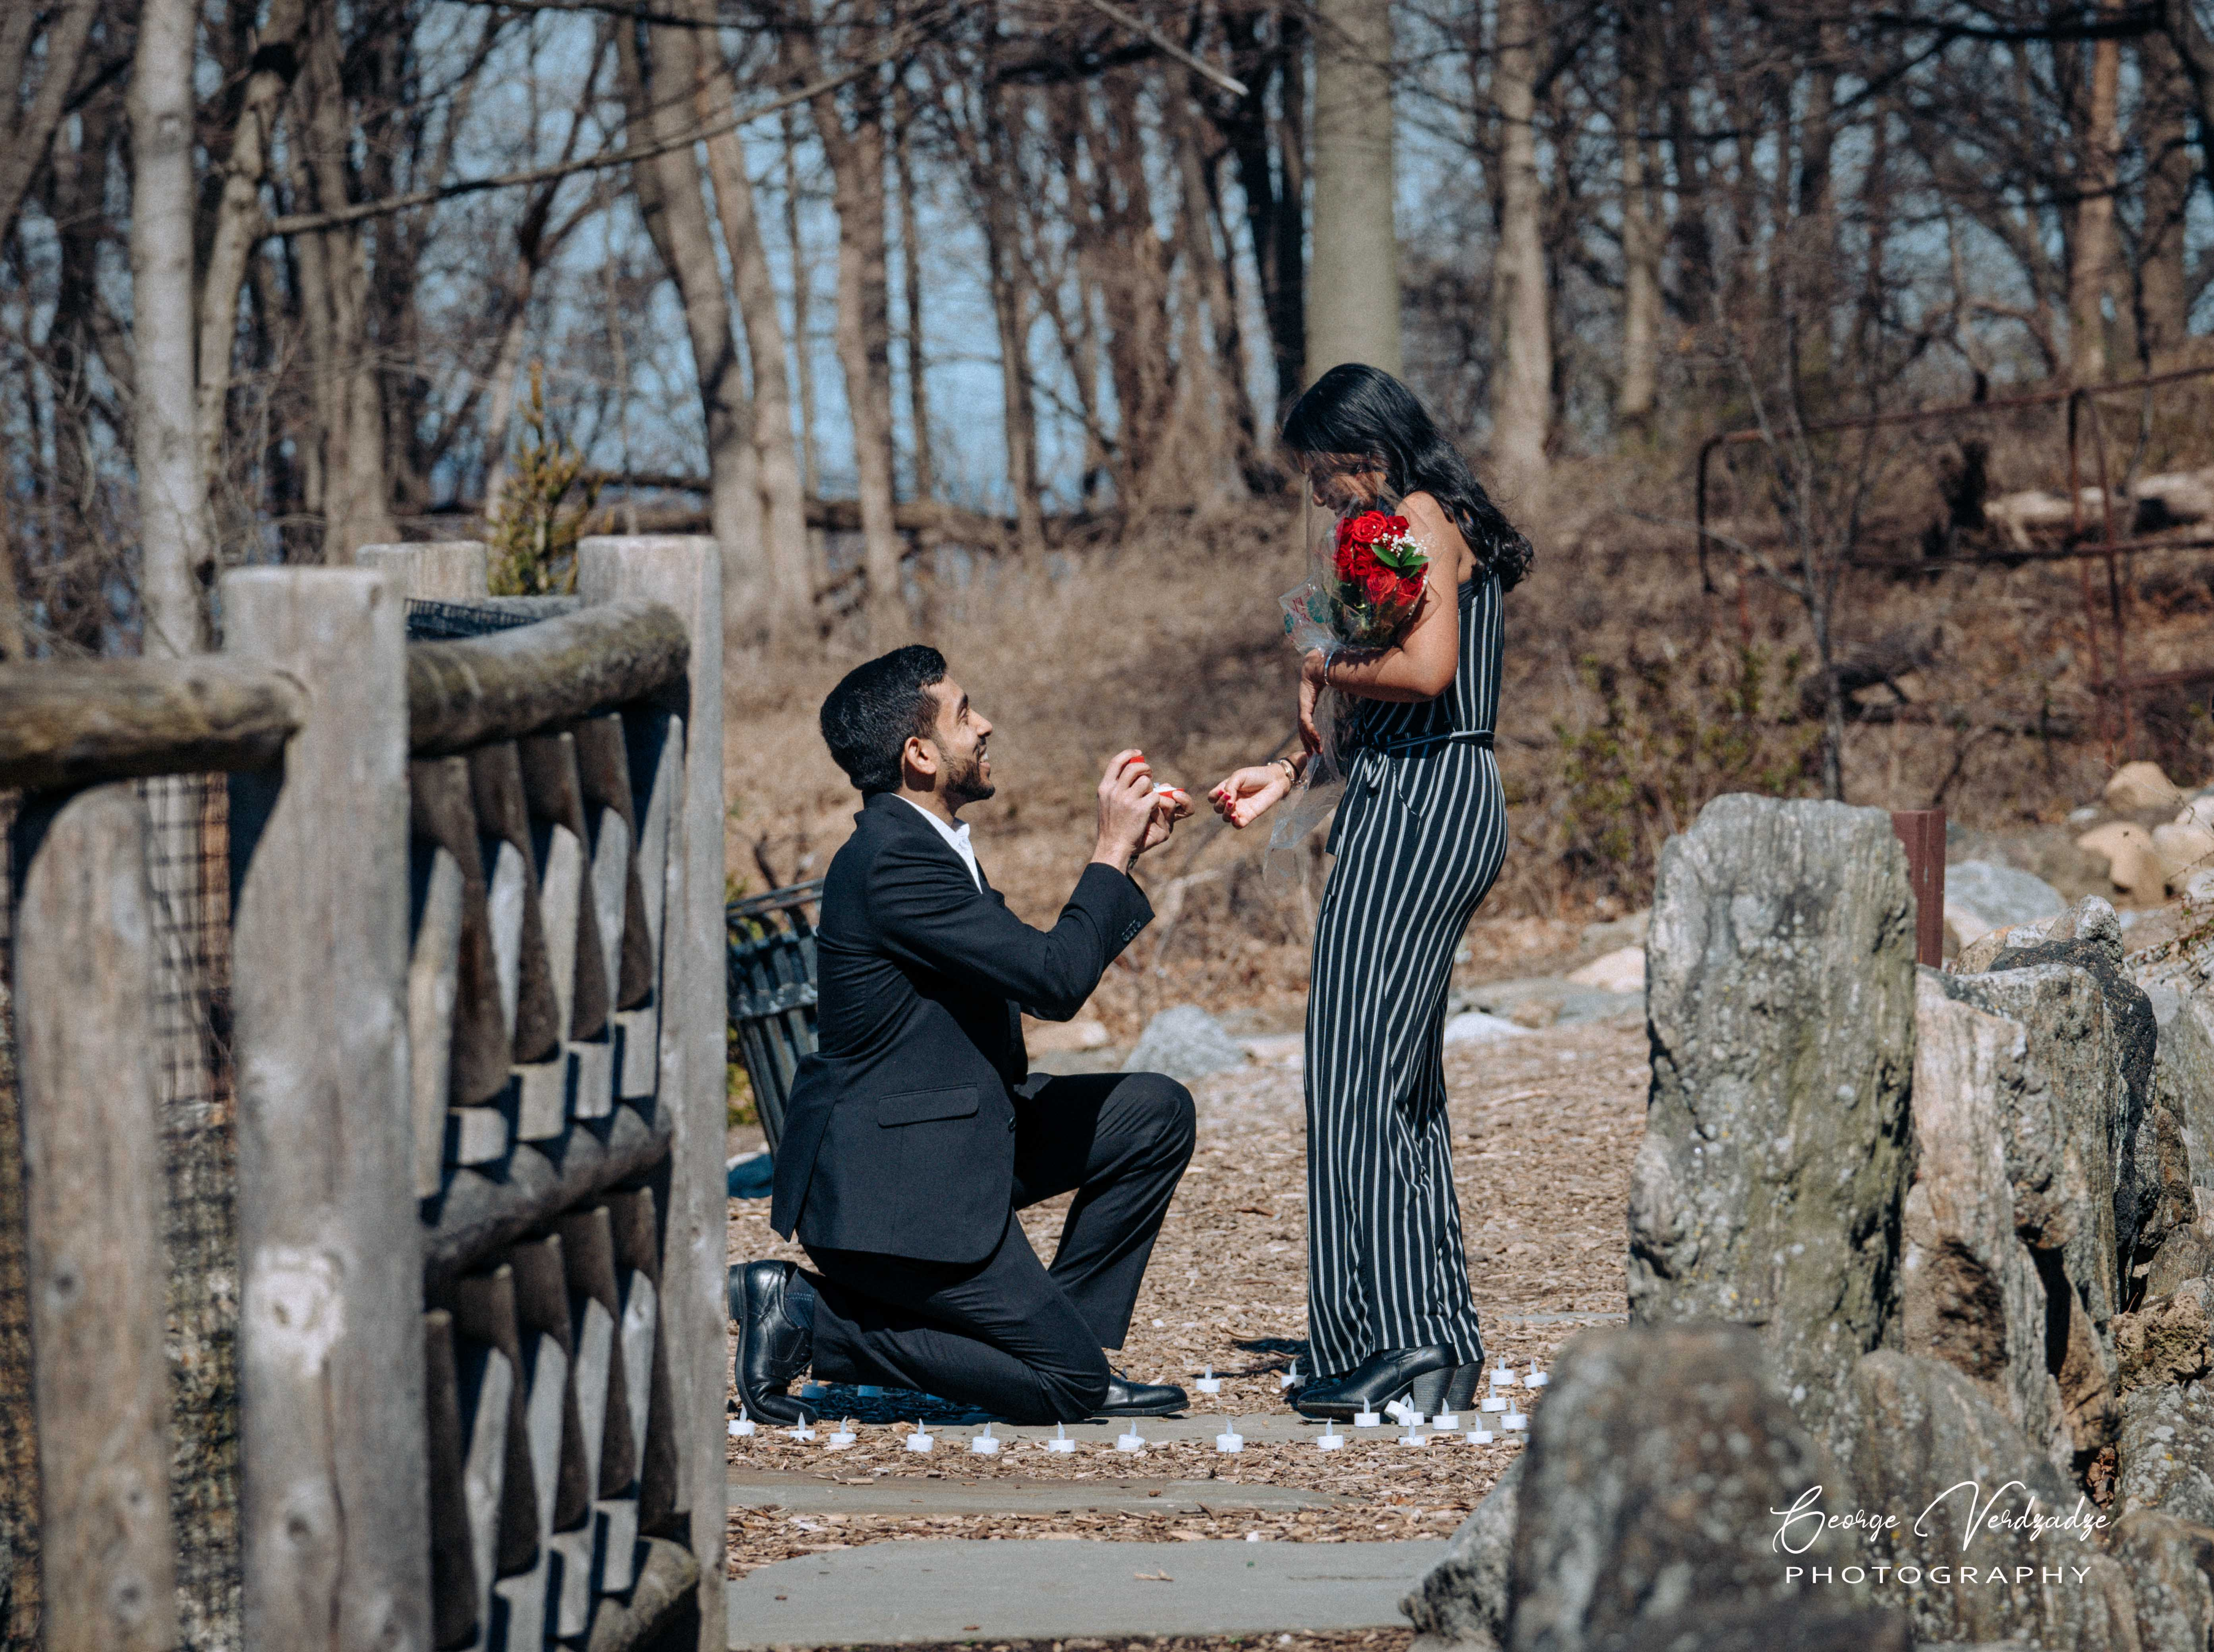 Marriage proposal at Untermyer Gardens, Yonkers, NY